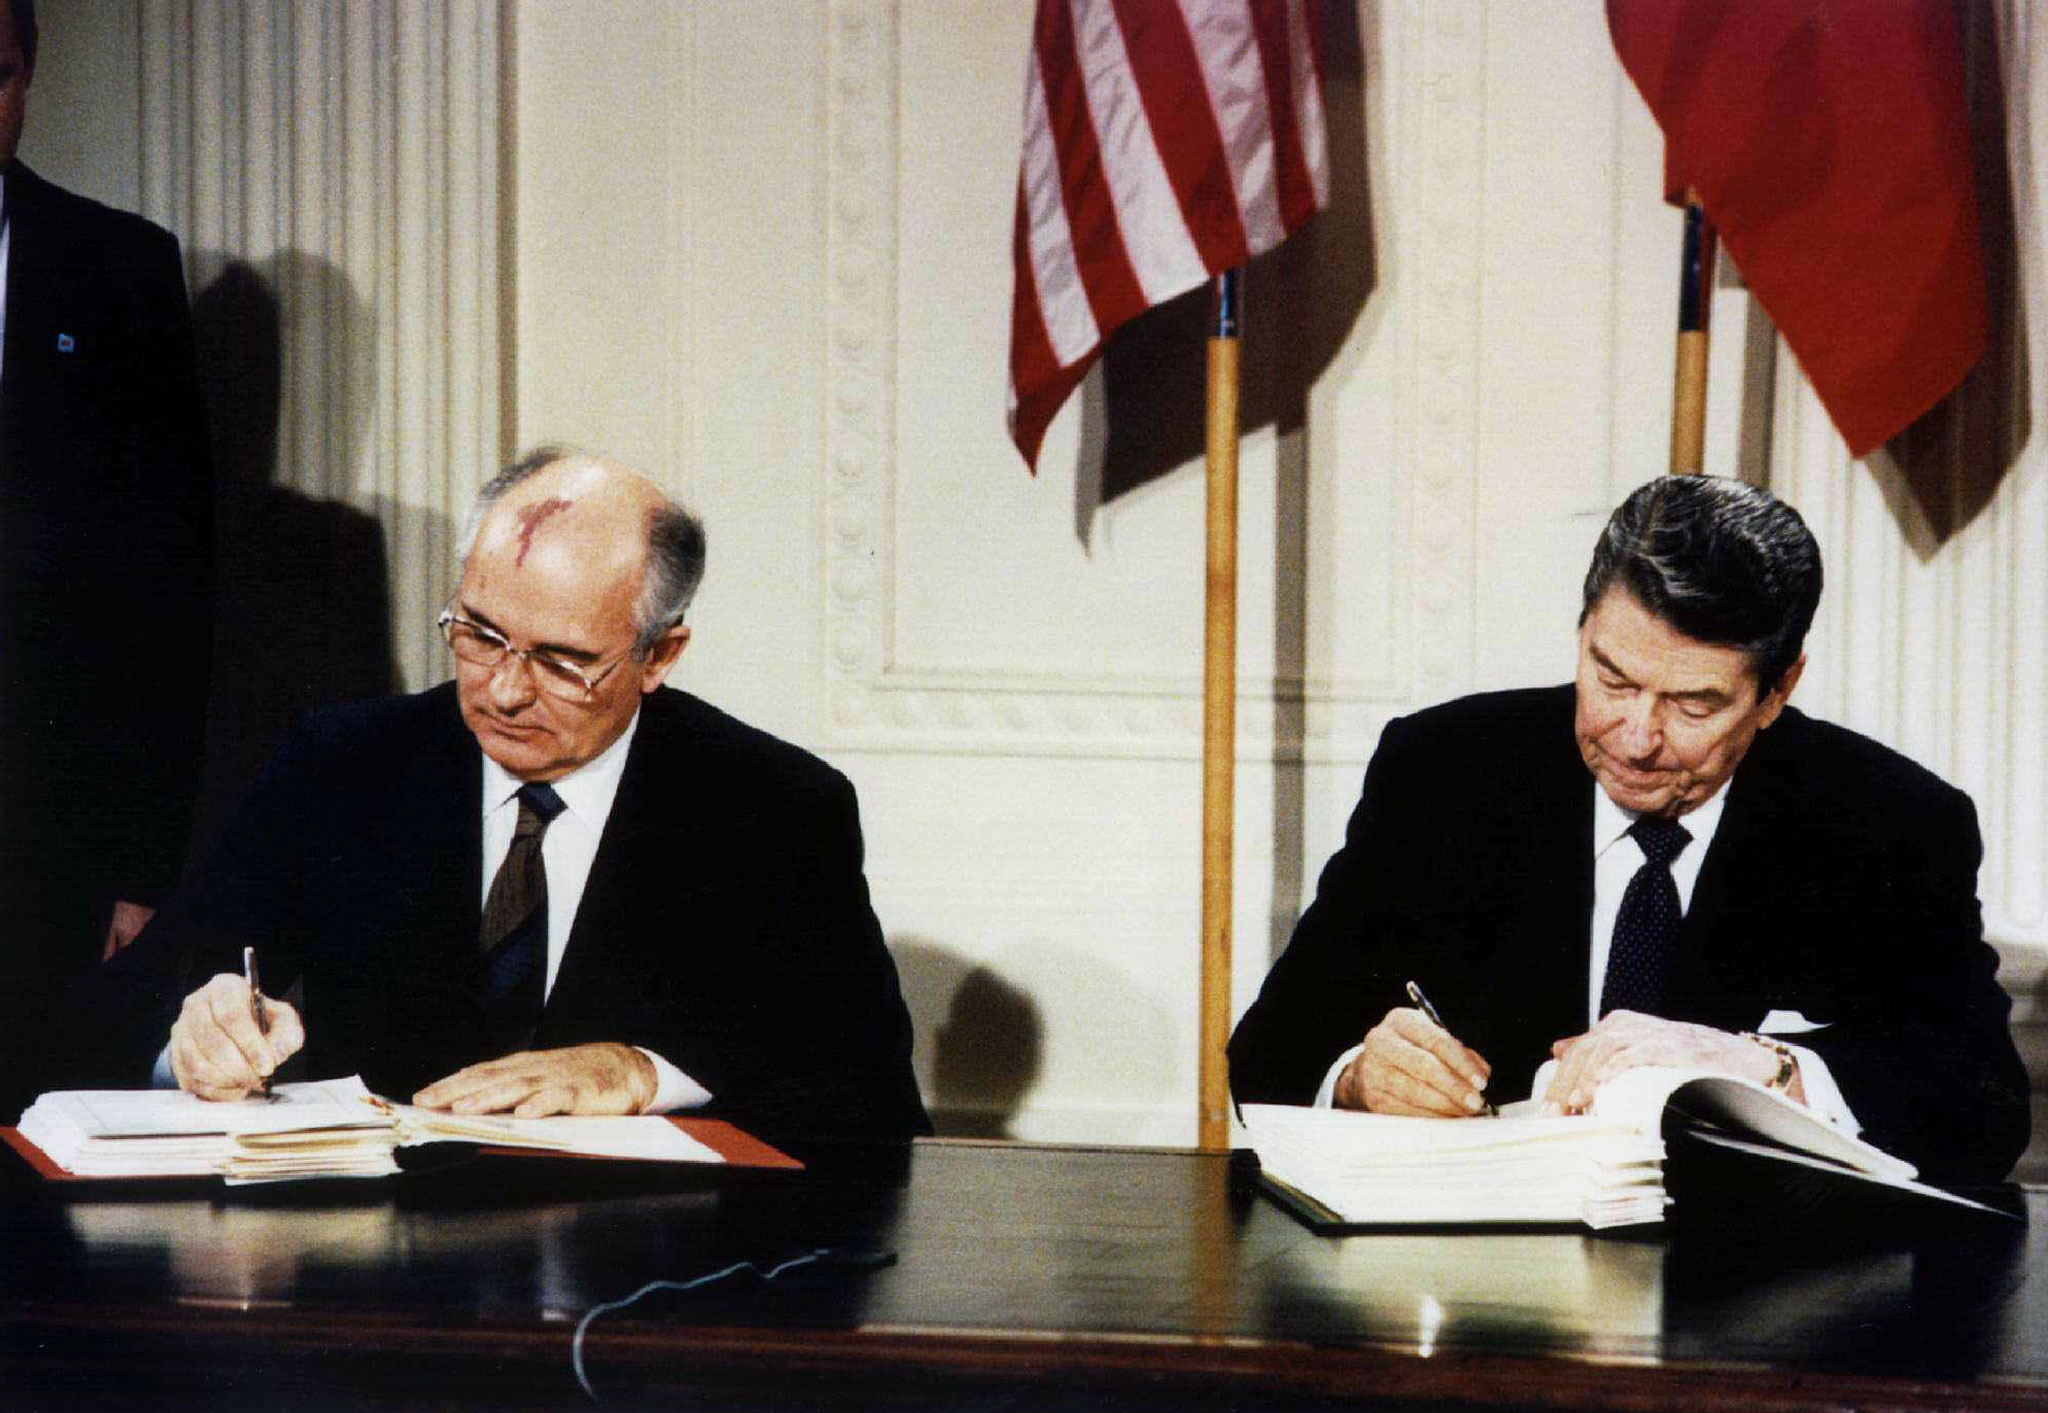 Gorbachev and Reagan sign the INF Treaty